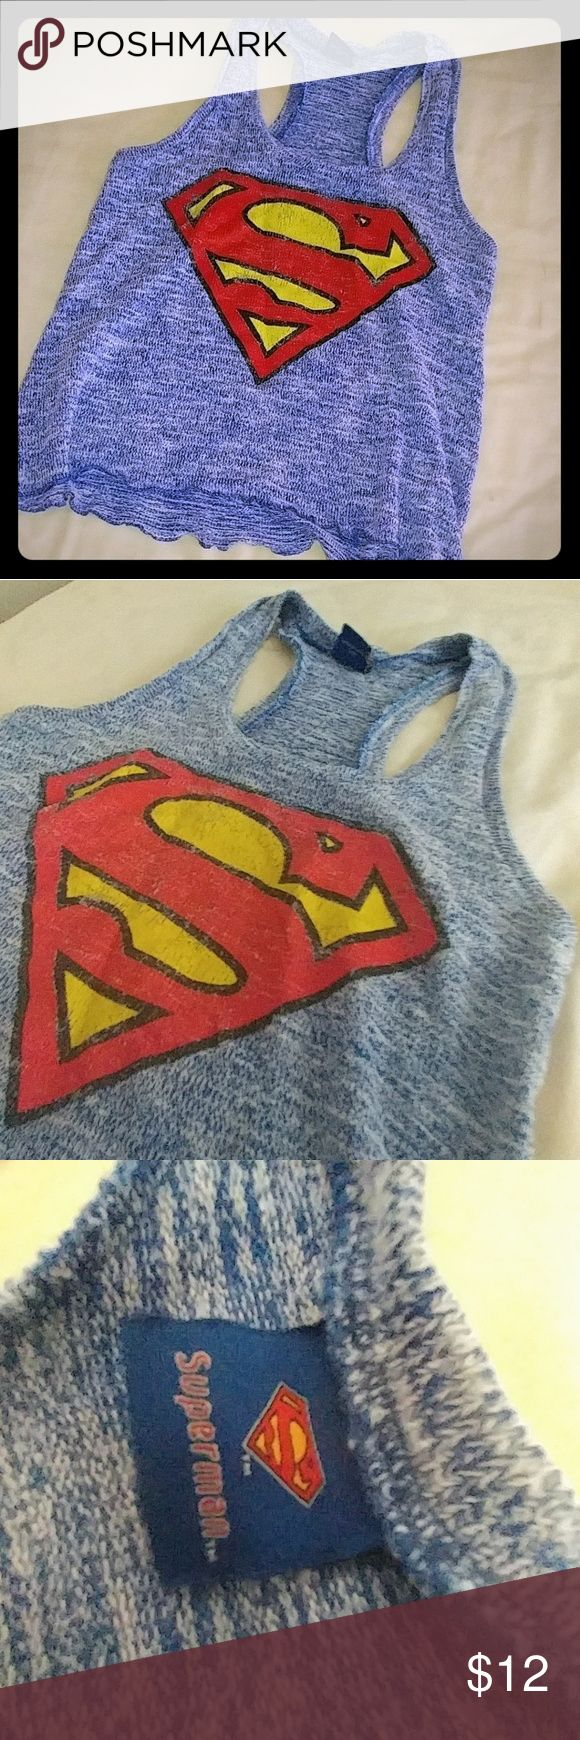 Superman Tank Top This superman tank top is cute &comfortable. Worn a few times. Ready to be loved again as this doesnt fit me anymore! Size small Tops Tank Tops